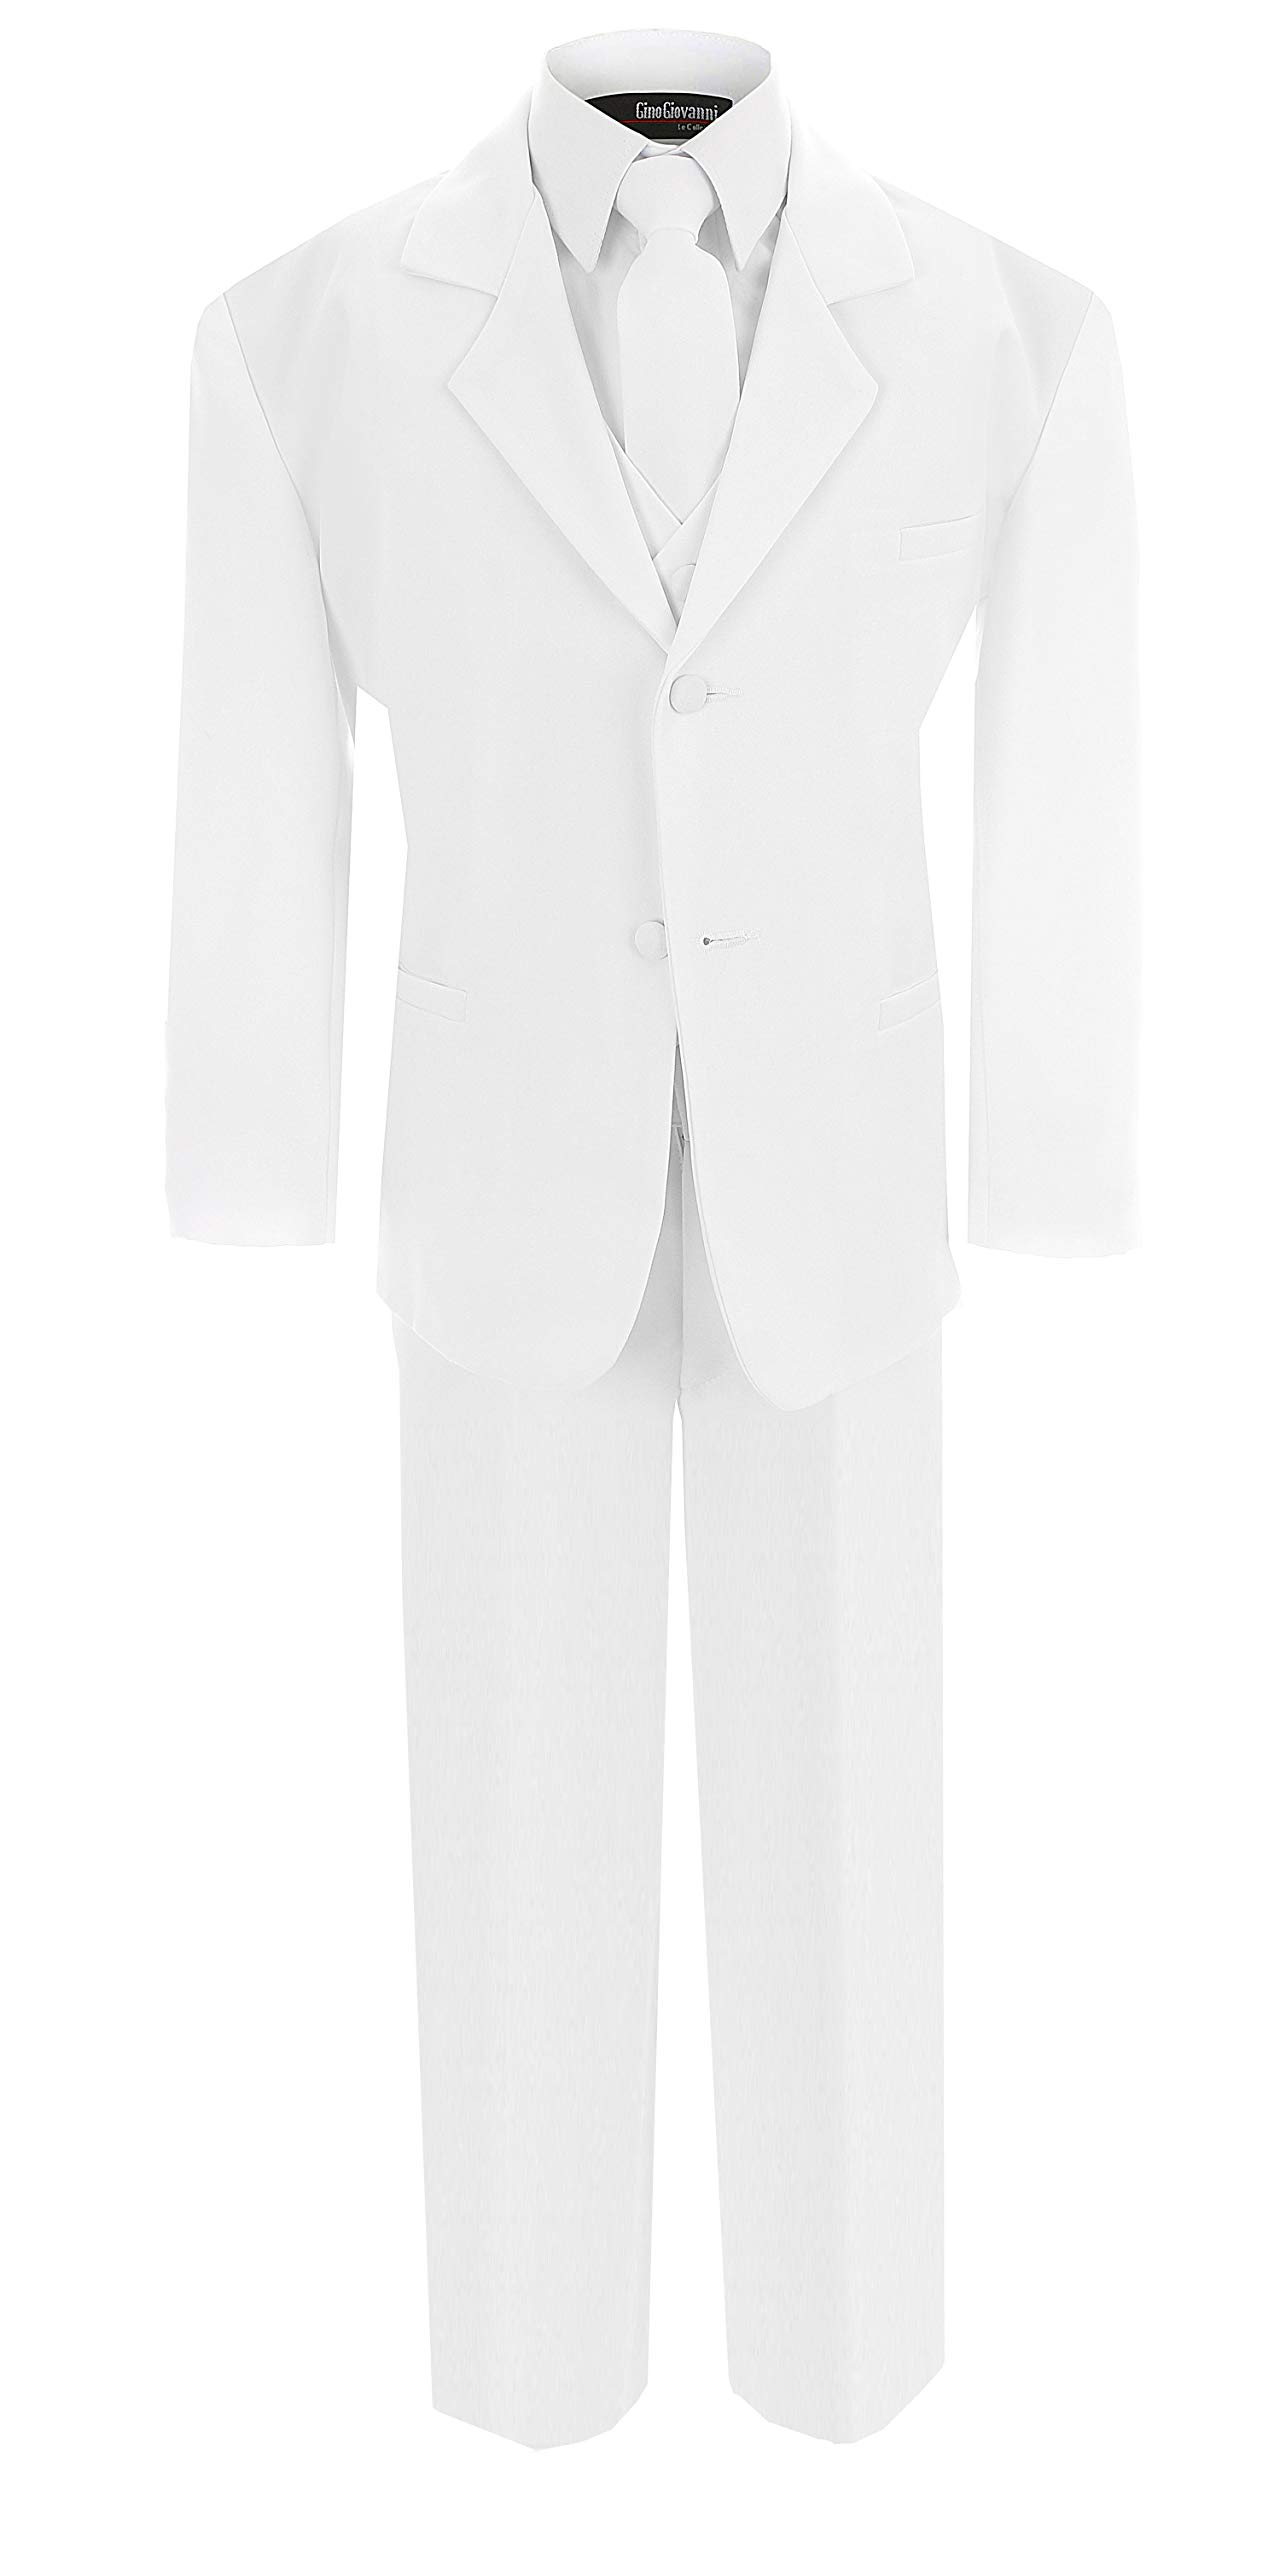 Boy's Formal Dresswear Set G214 (14, White Suit)